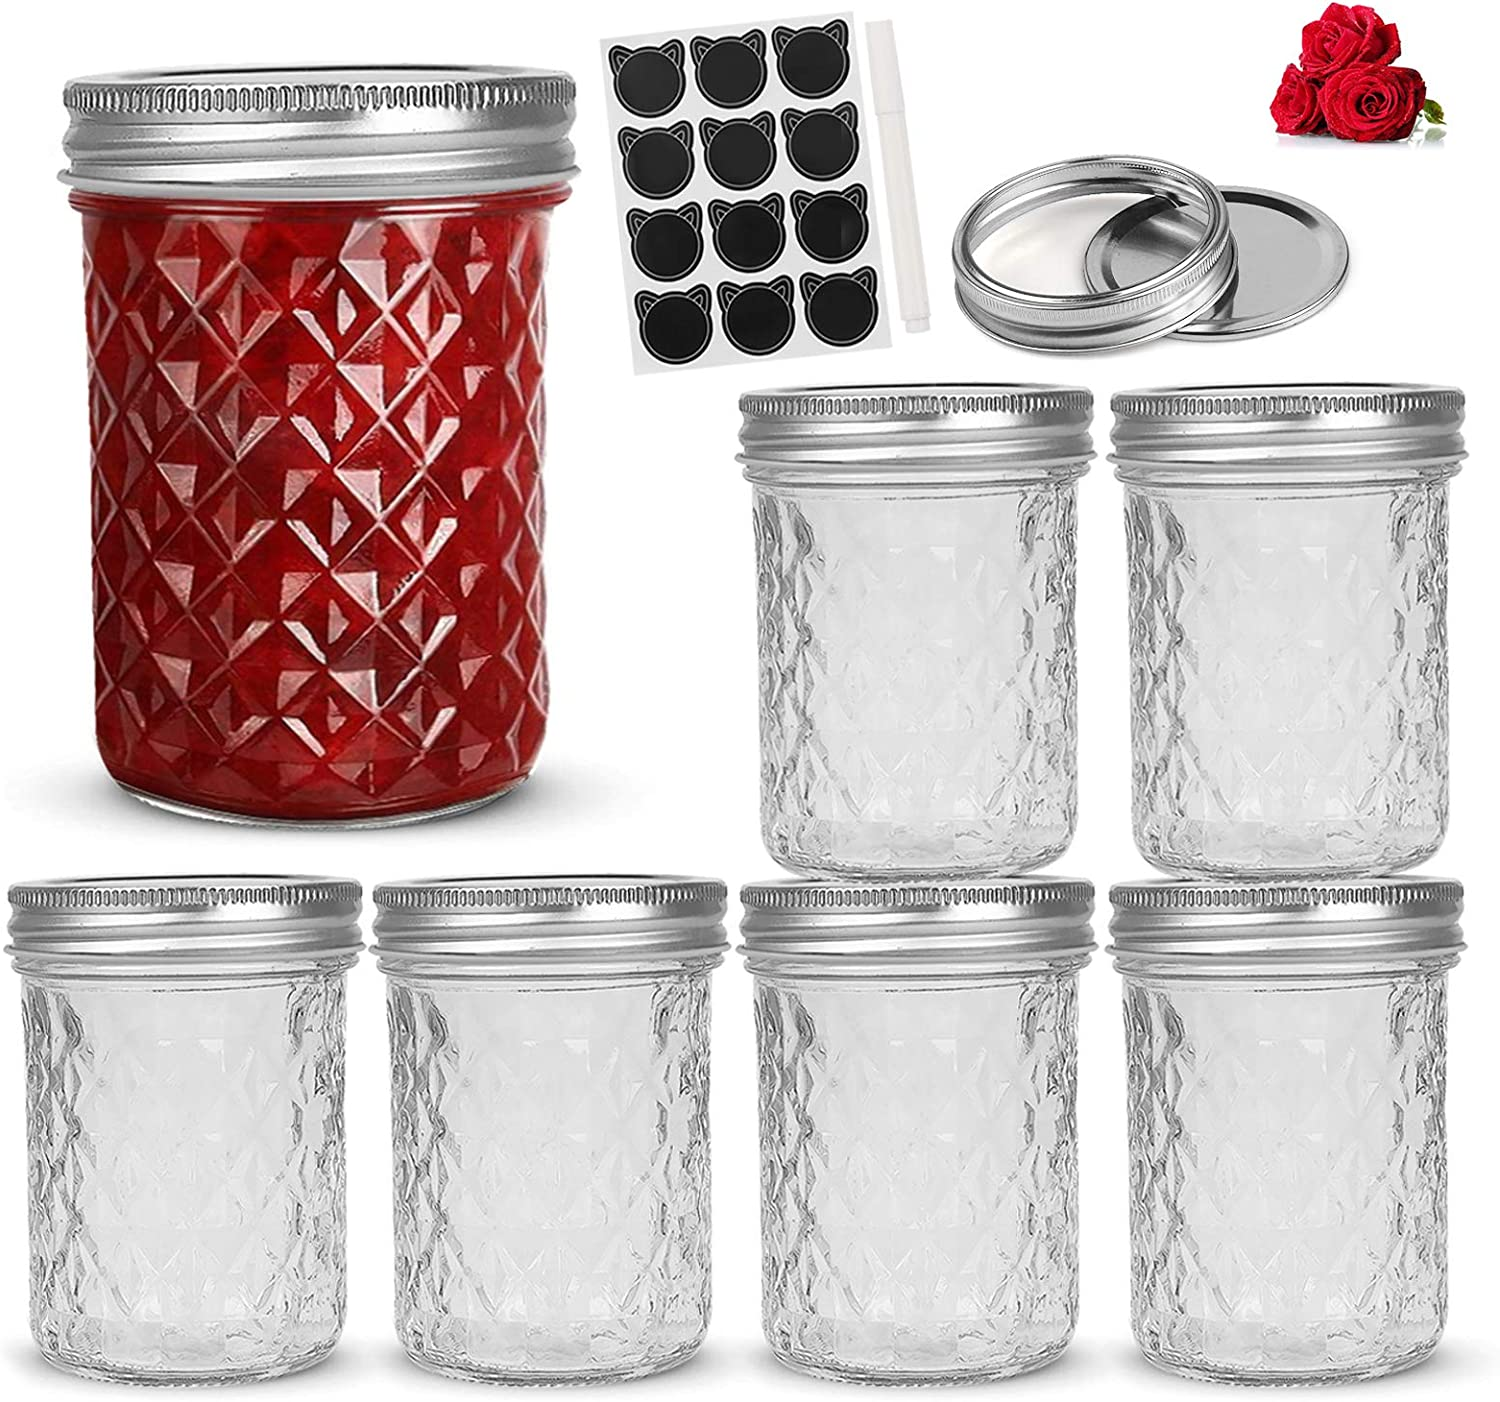 LovoIn 6 PACK 16oz Wide Mouth Mason Jars with Lids and Bands, Glass Canning Jars Ideal for Food Storage, Jam, Body Butters, Jelly, Wedding Favors, Baby Foods